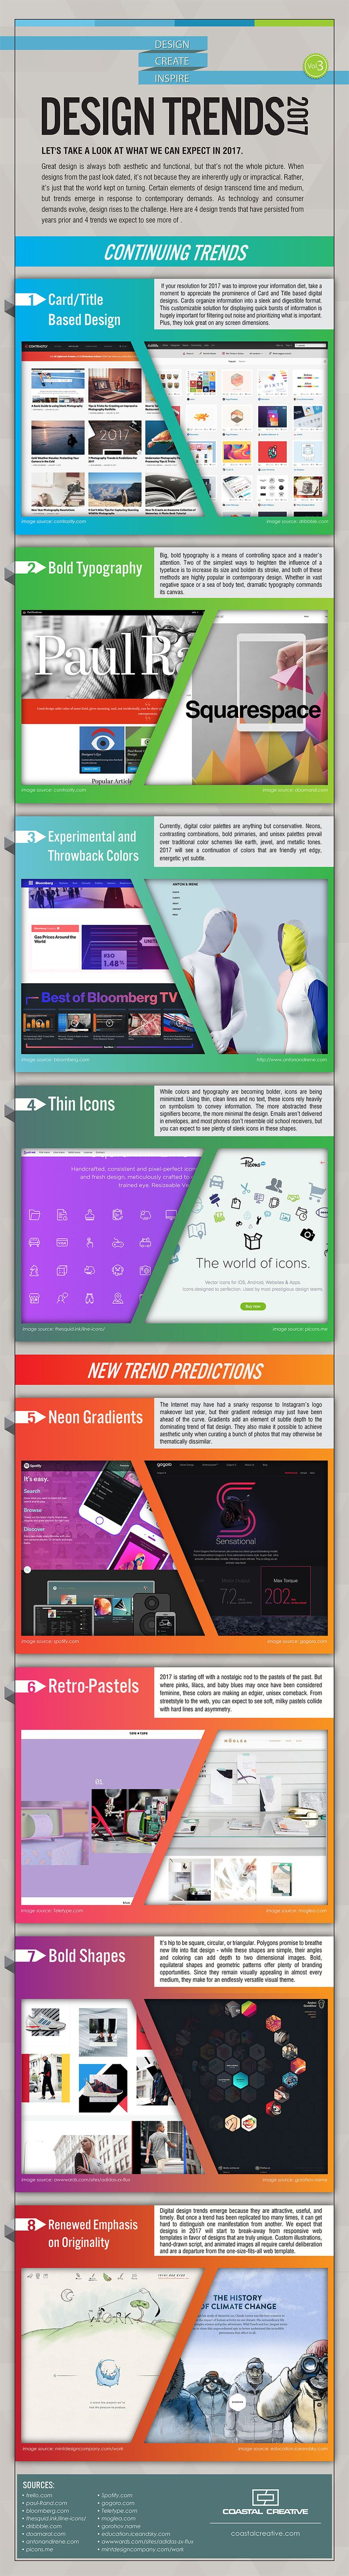 8 #Design Trends That Should Shape Your 2017 #Marketing Strategy #Infographic